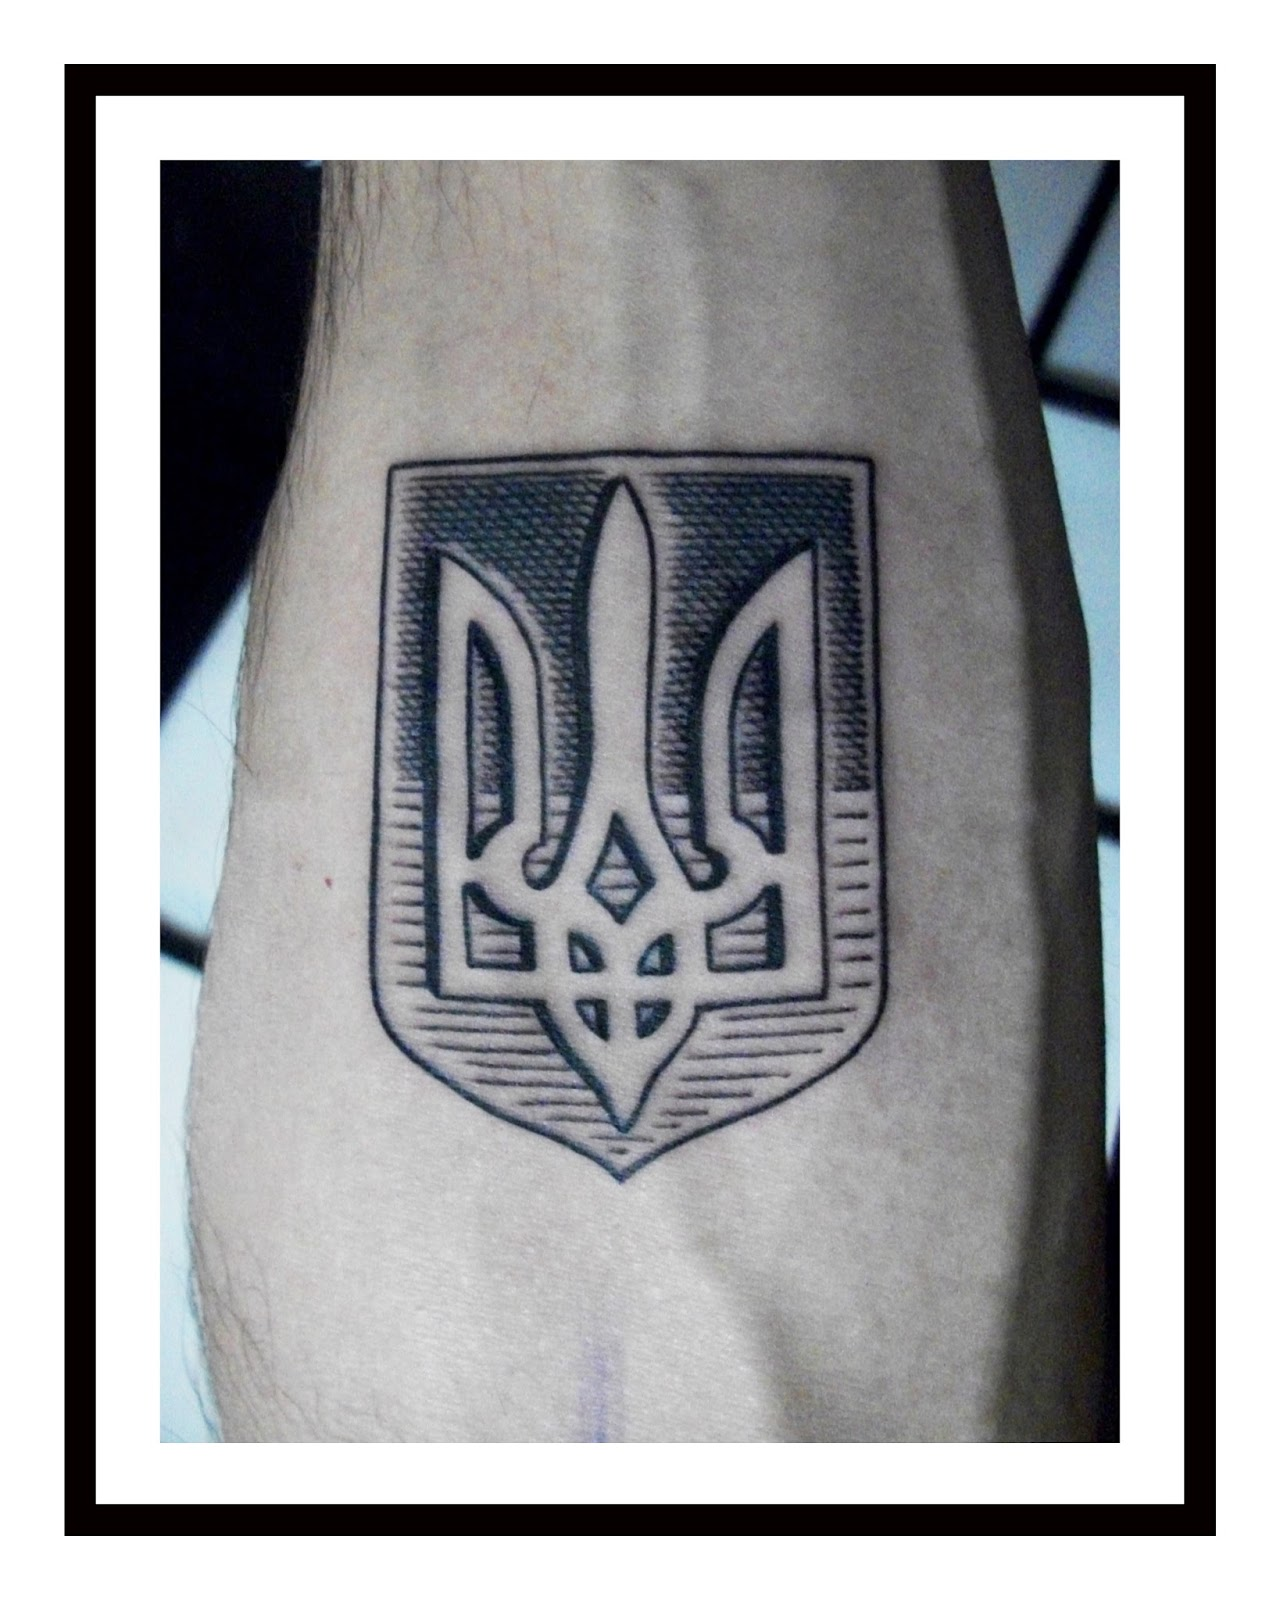 UKRAINE-SYMBOL-TATTOO